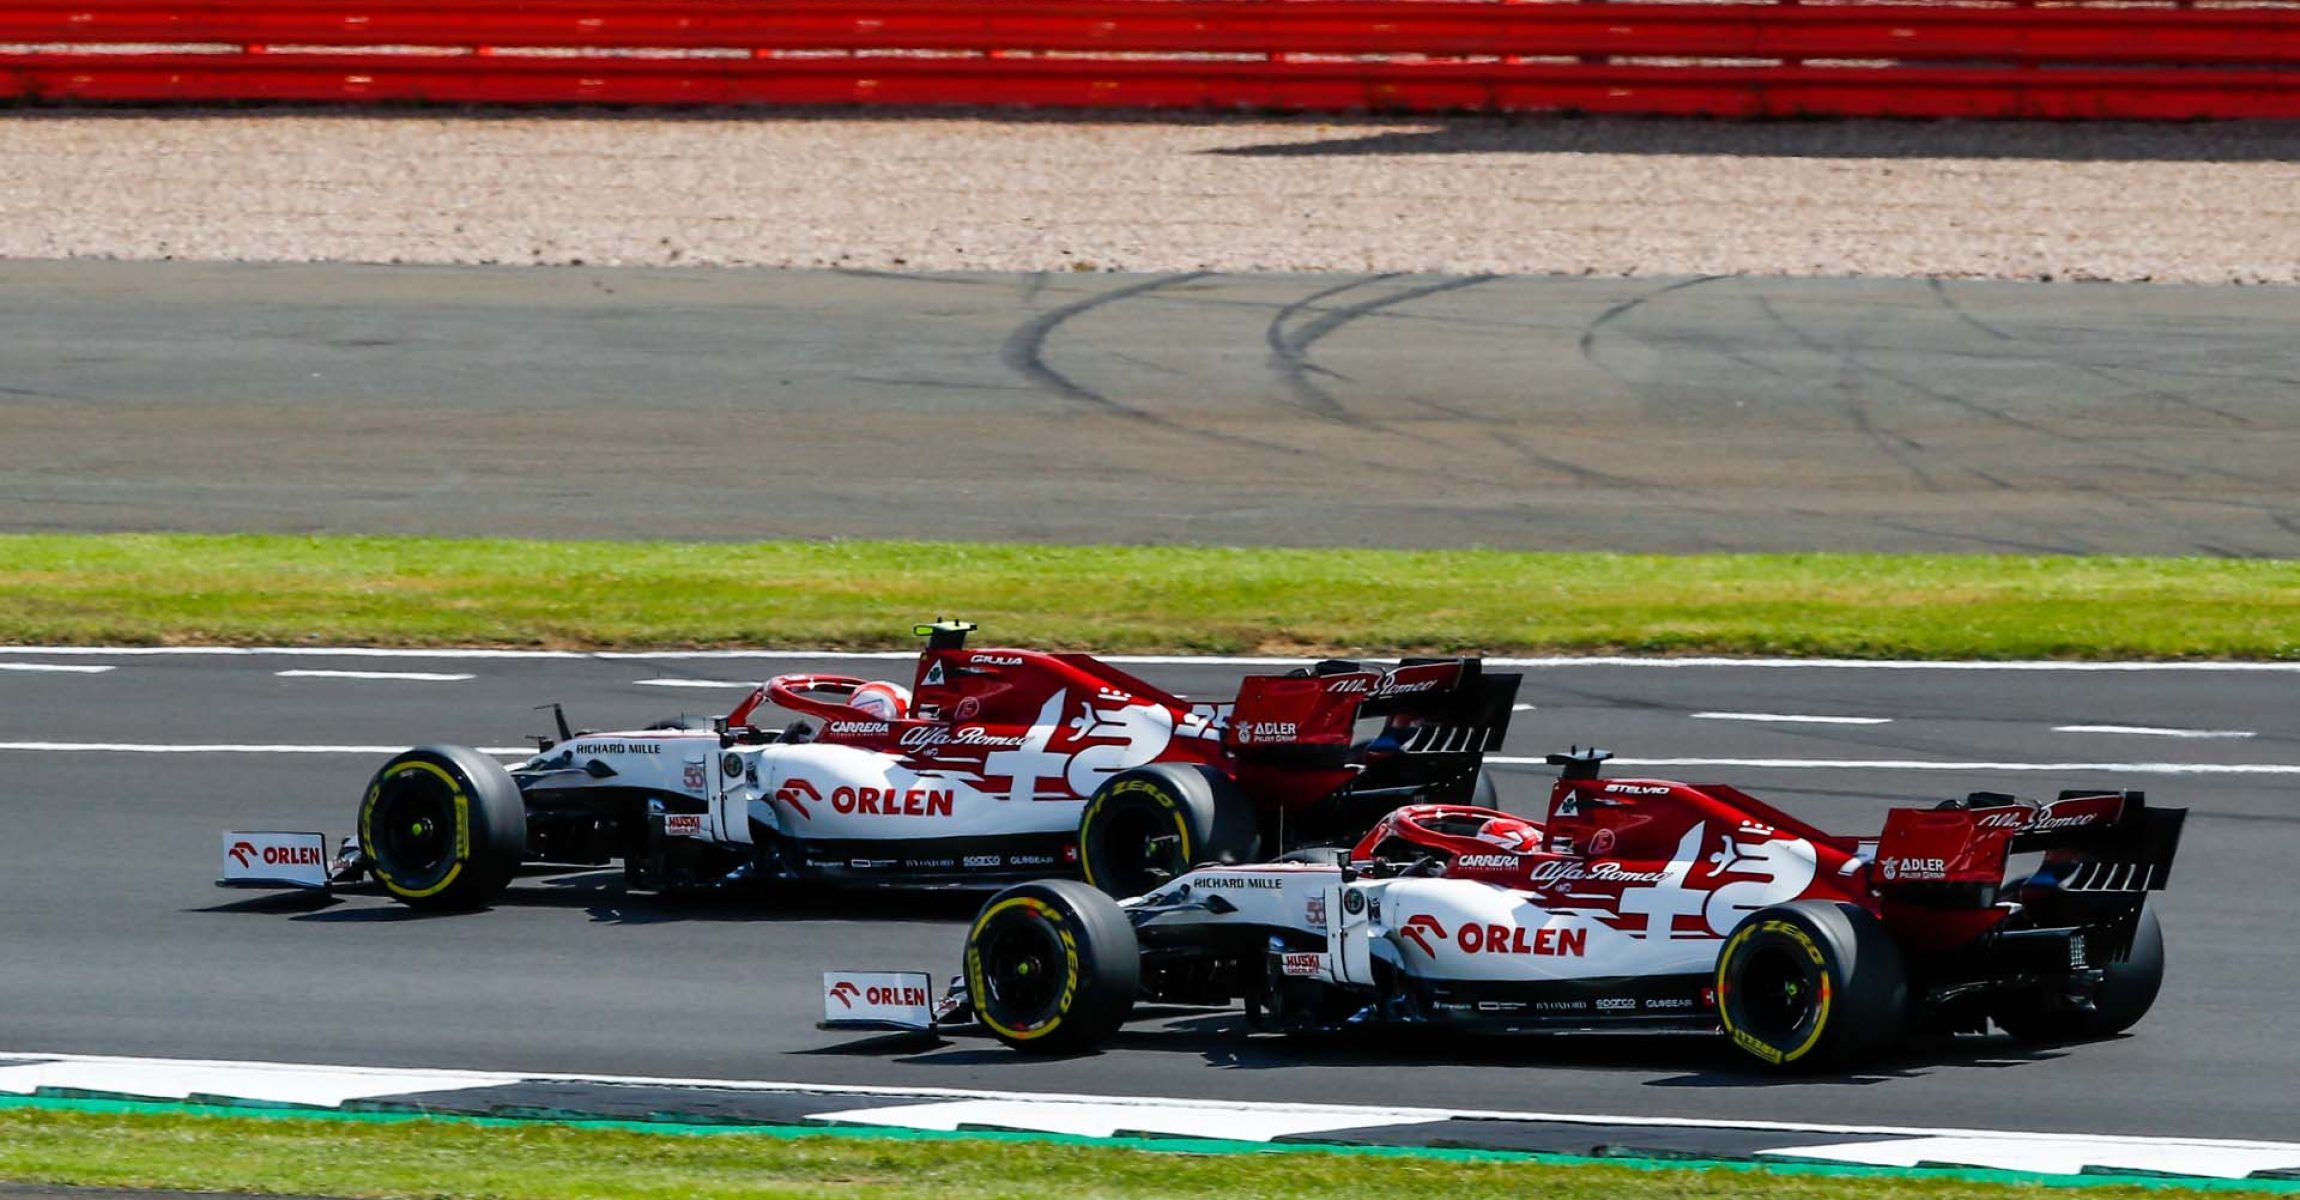 Start of the race, 99 GIOVINAZZI Antonio (ita), Alfa Romeo Racing C39, 07 RAIKKONEN Kimi Räikkönen (fin), Alfa Romeo Racing C39, action during the Formula 1 Pirelli British Grand Prix 2020, from July 31 to August 02, 2020 on the Silverstone Circuit, in Silverstone, United Kingdom - Photo Xavi Bonilla / DPPI